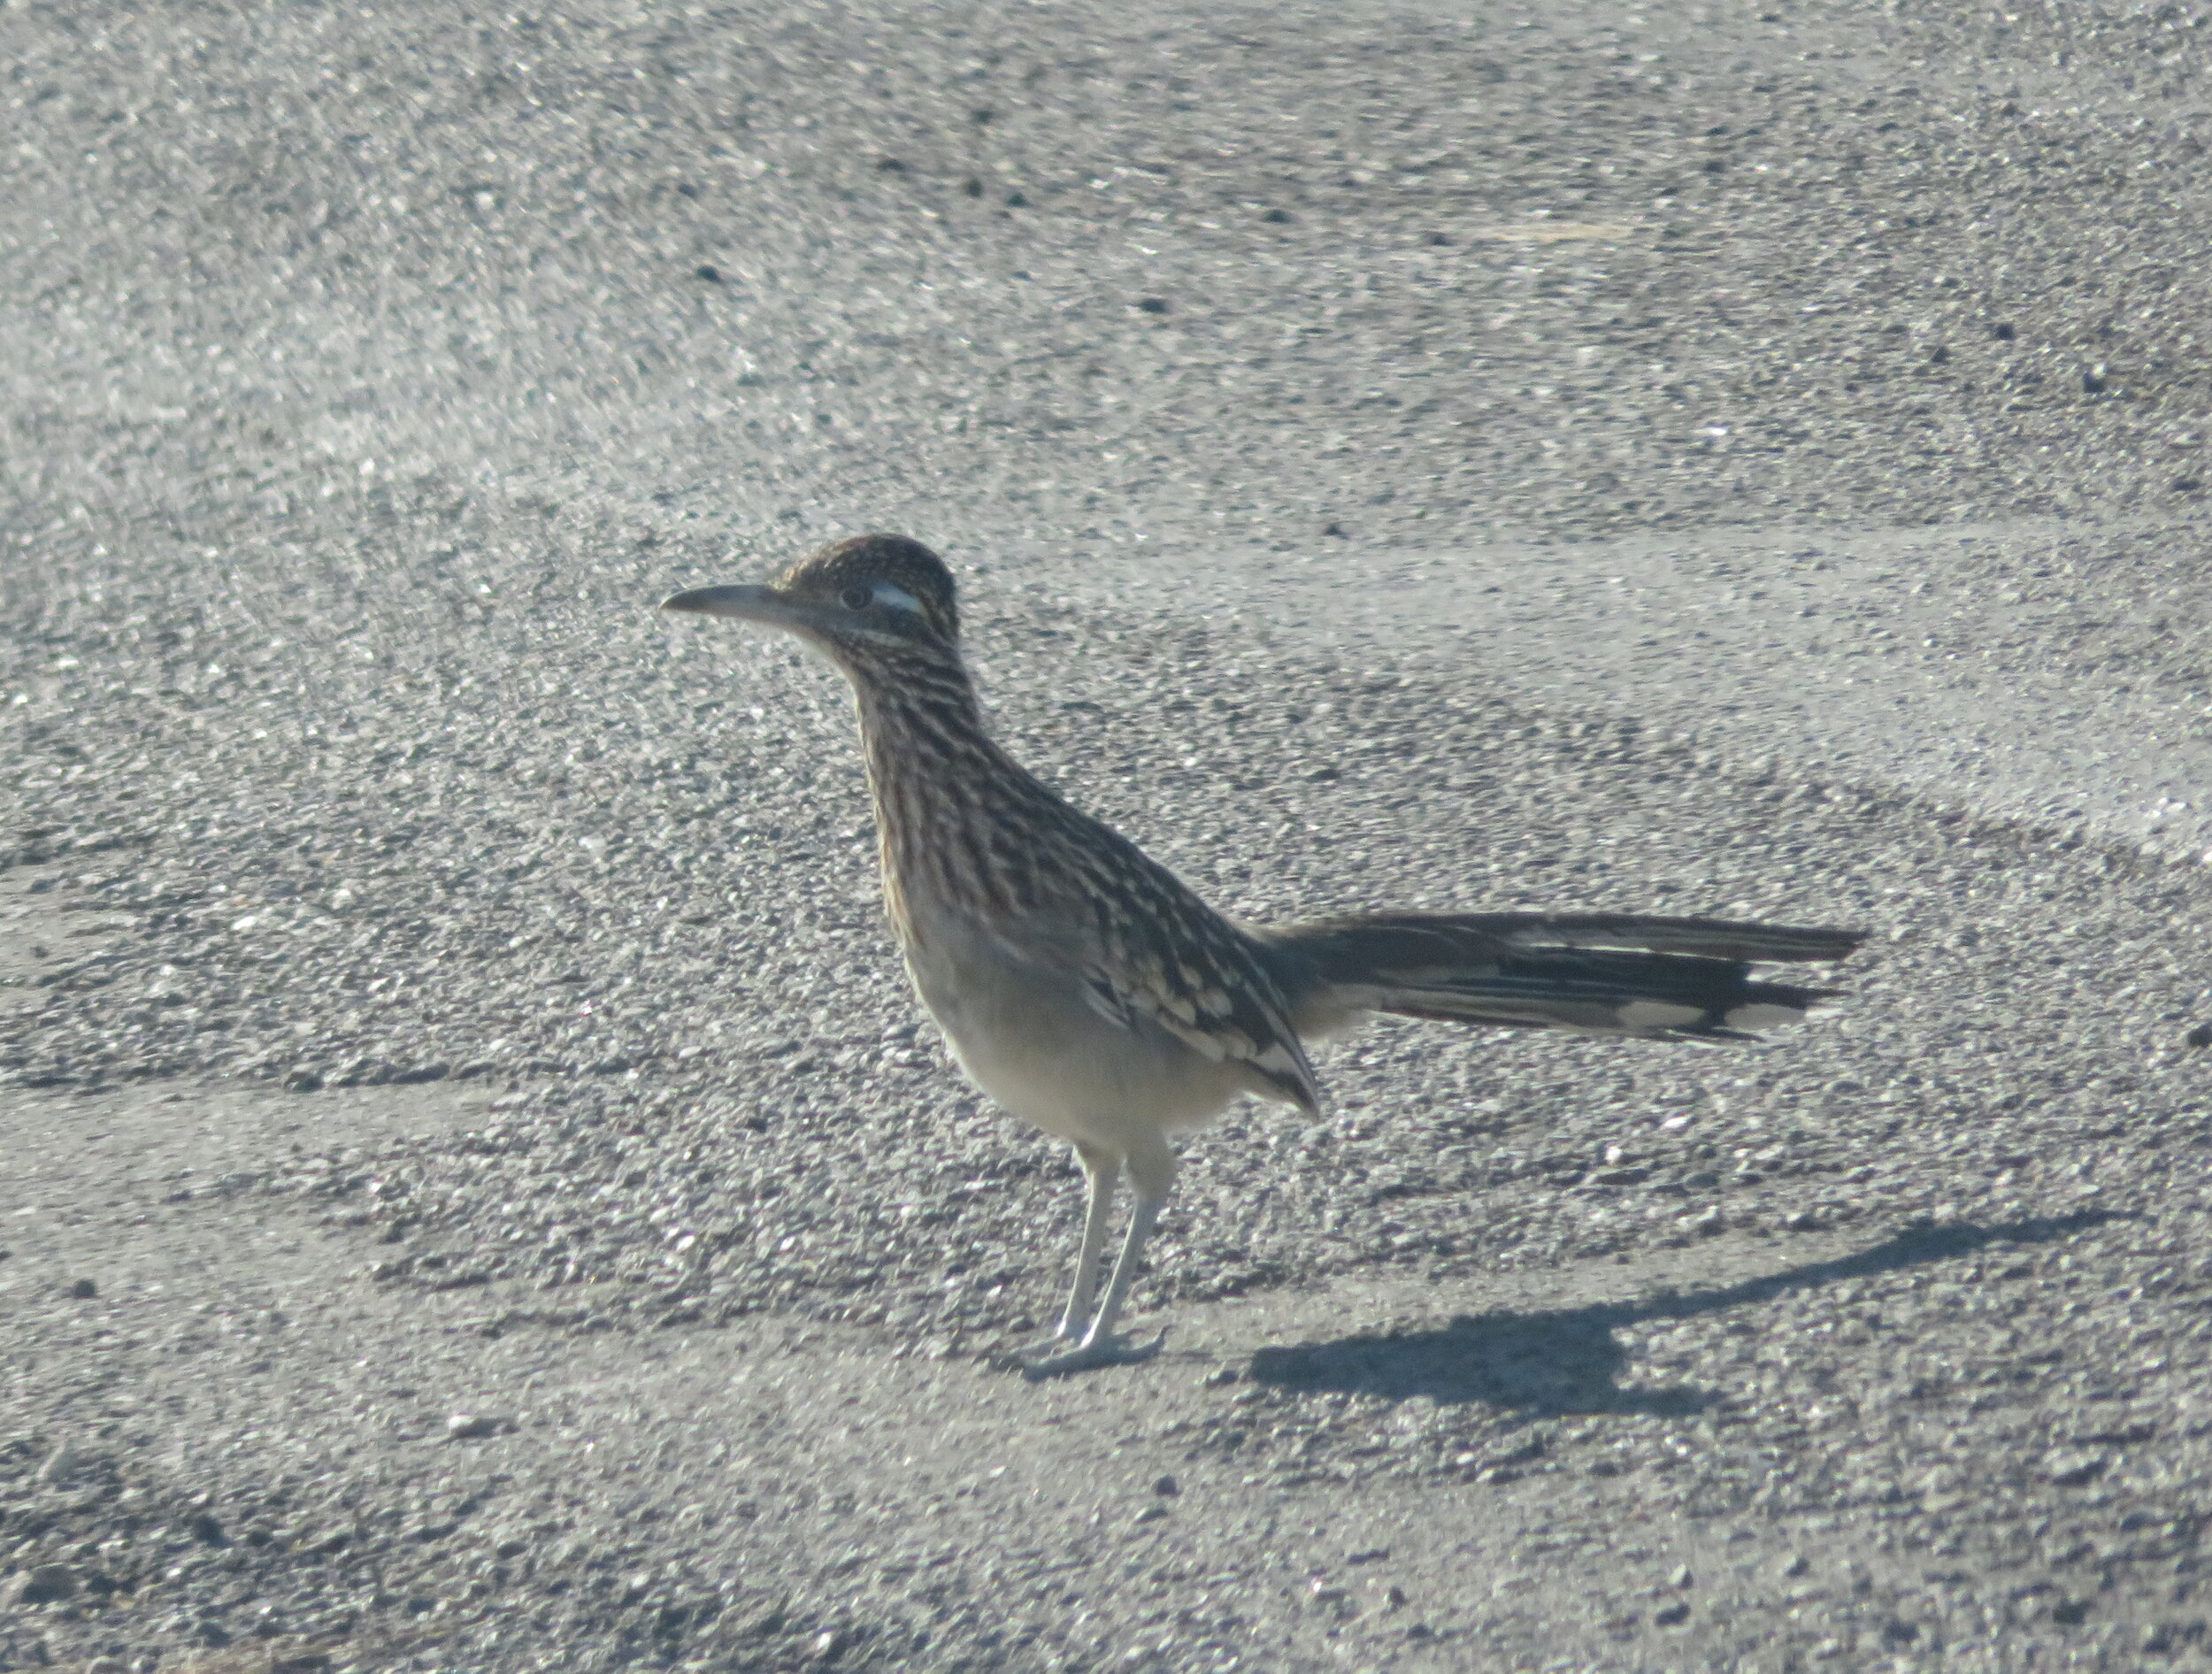 A roadrunner greeted us as we entered the campground. Beep-beep!